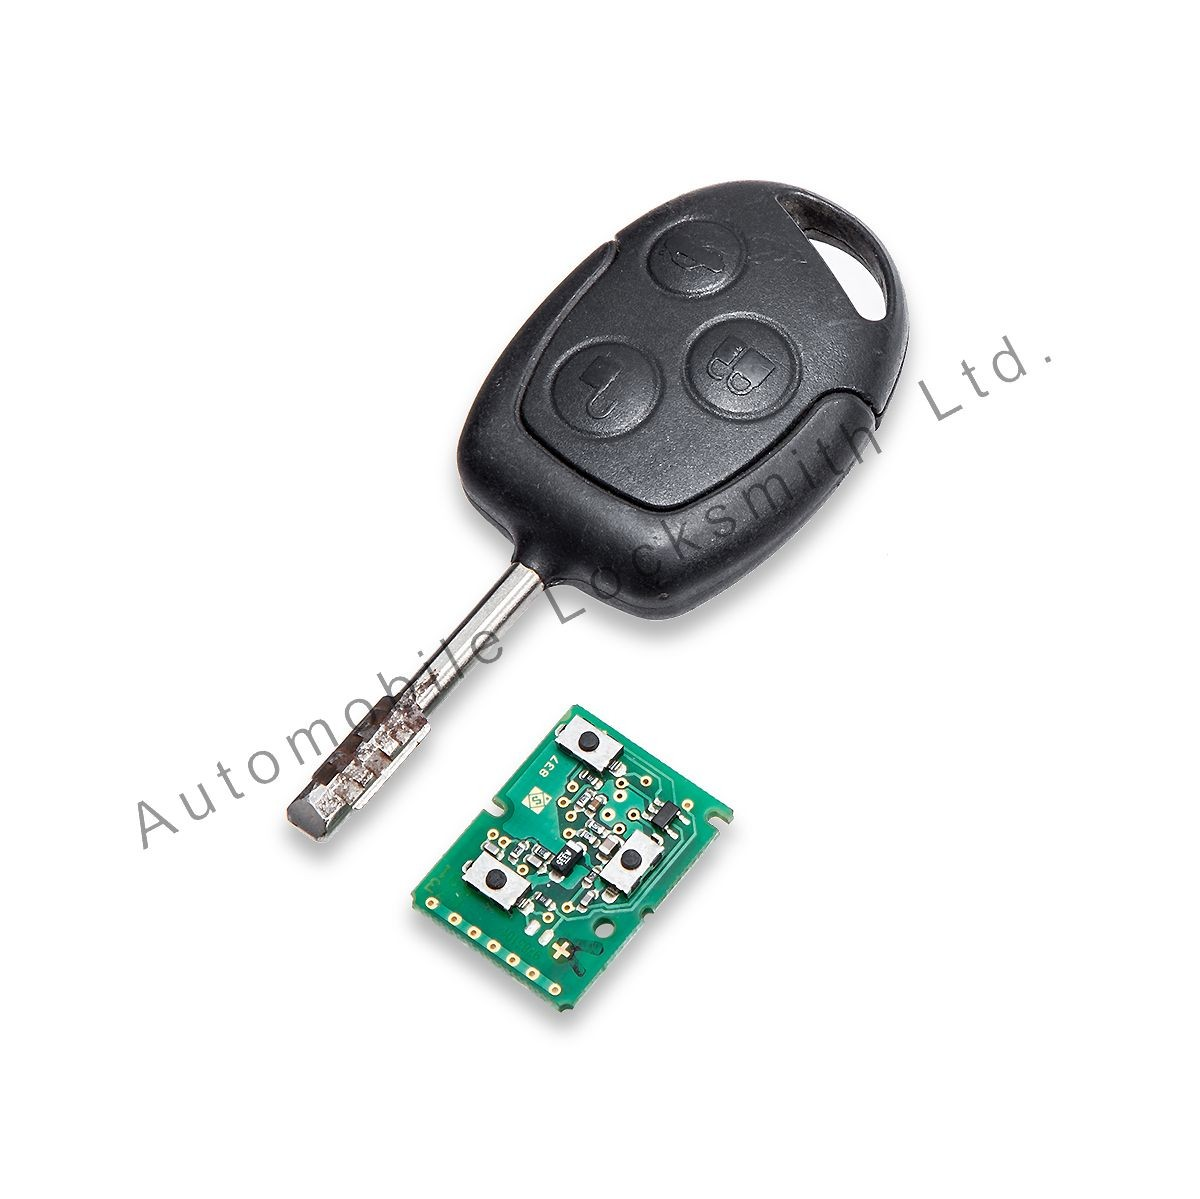 Repair Service for Ford 3 button remote key